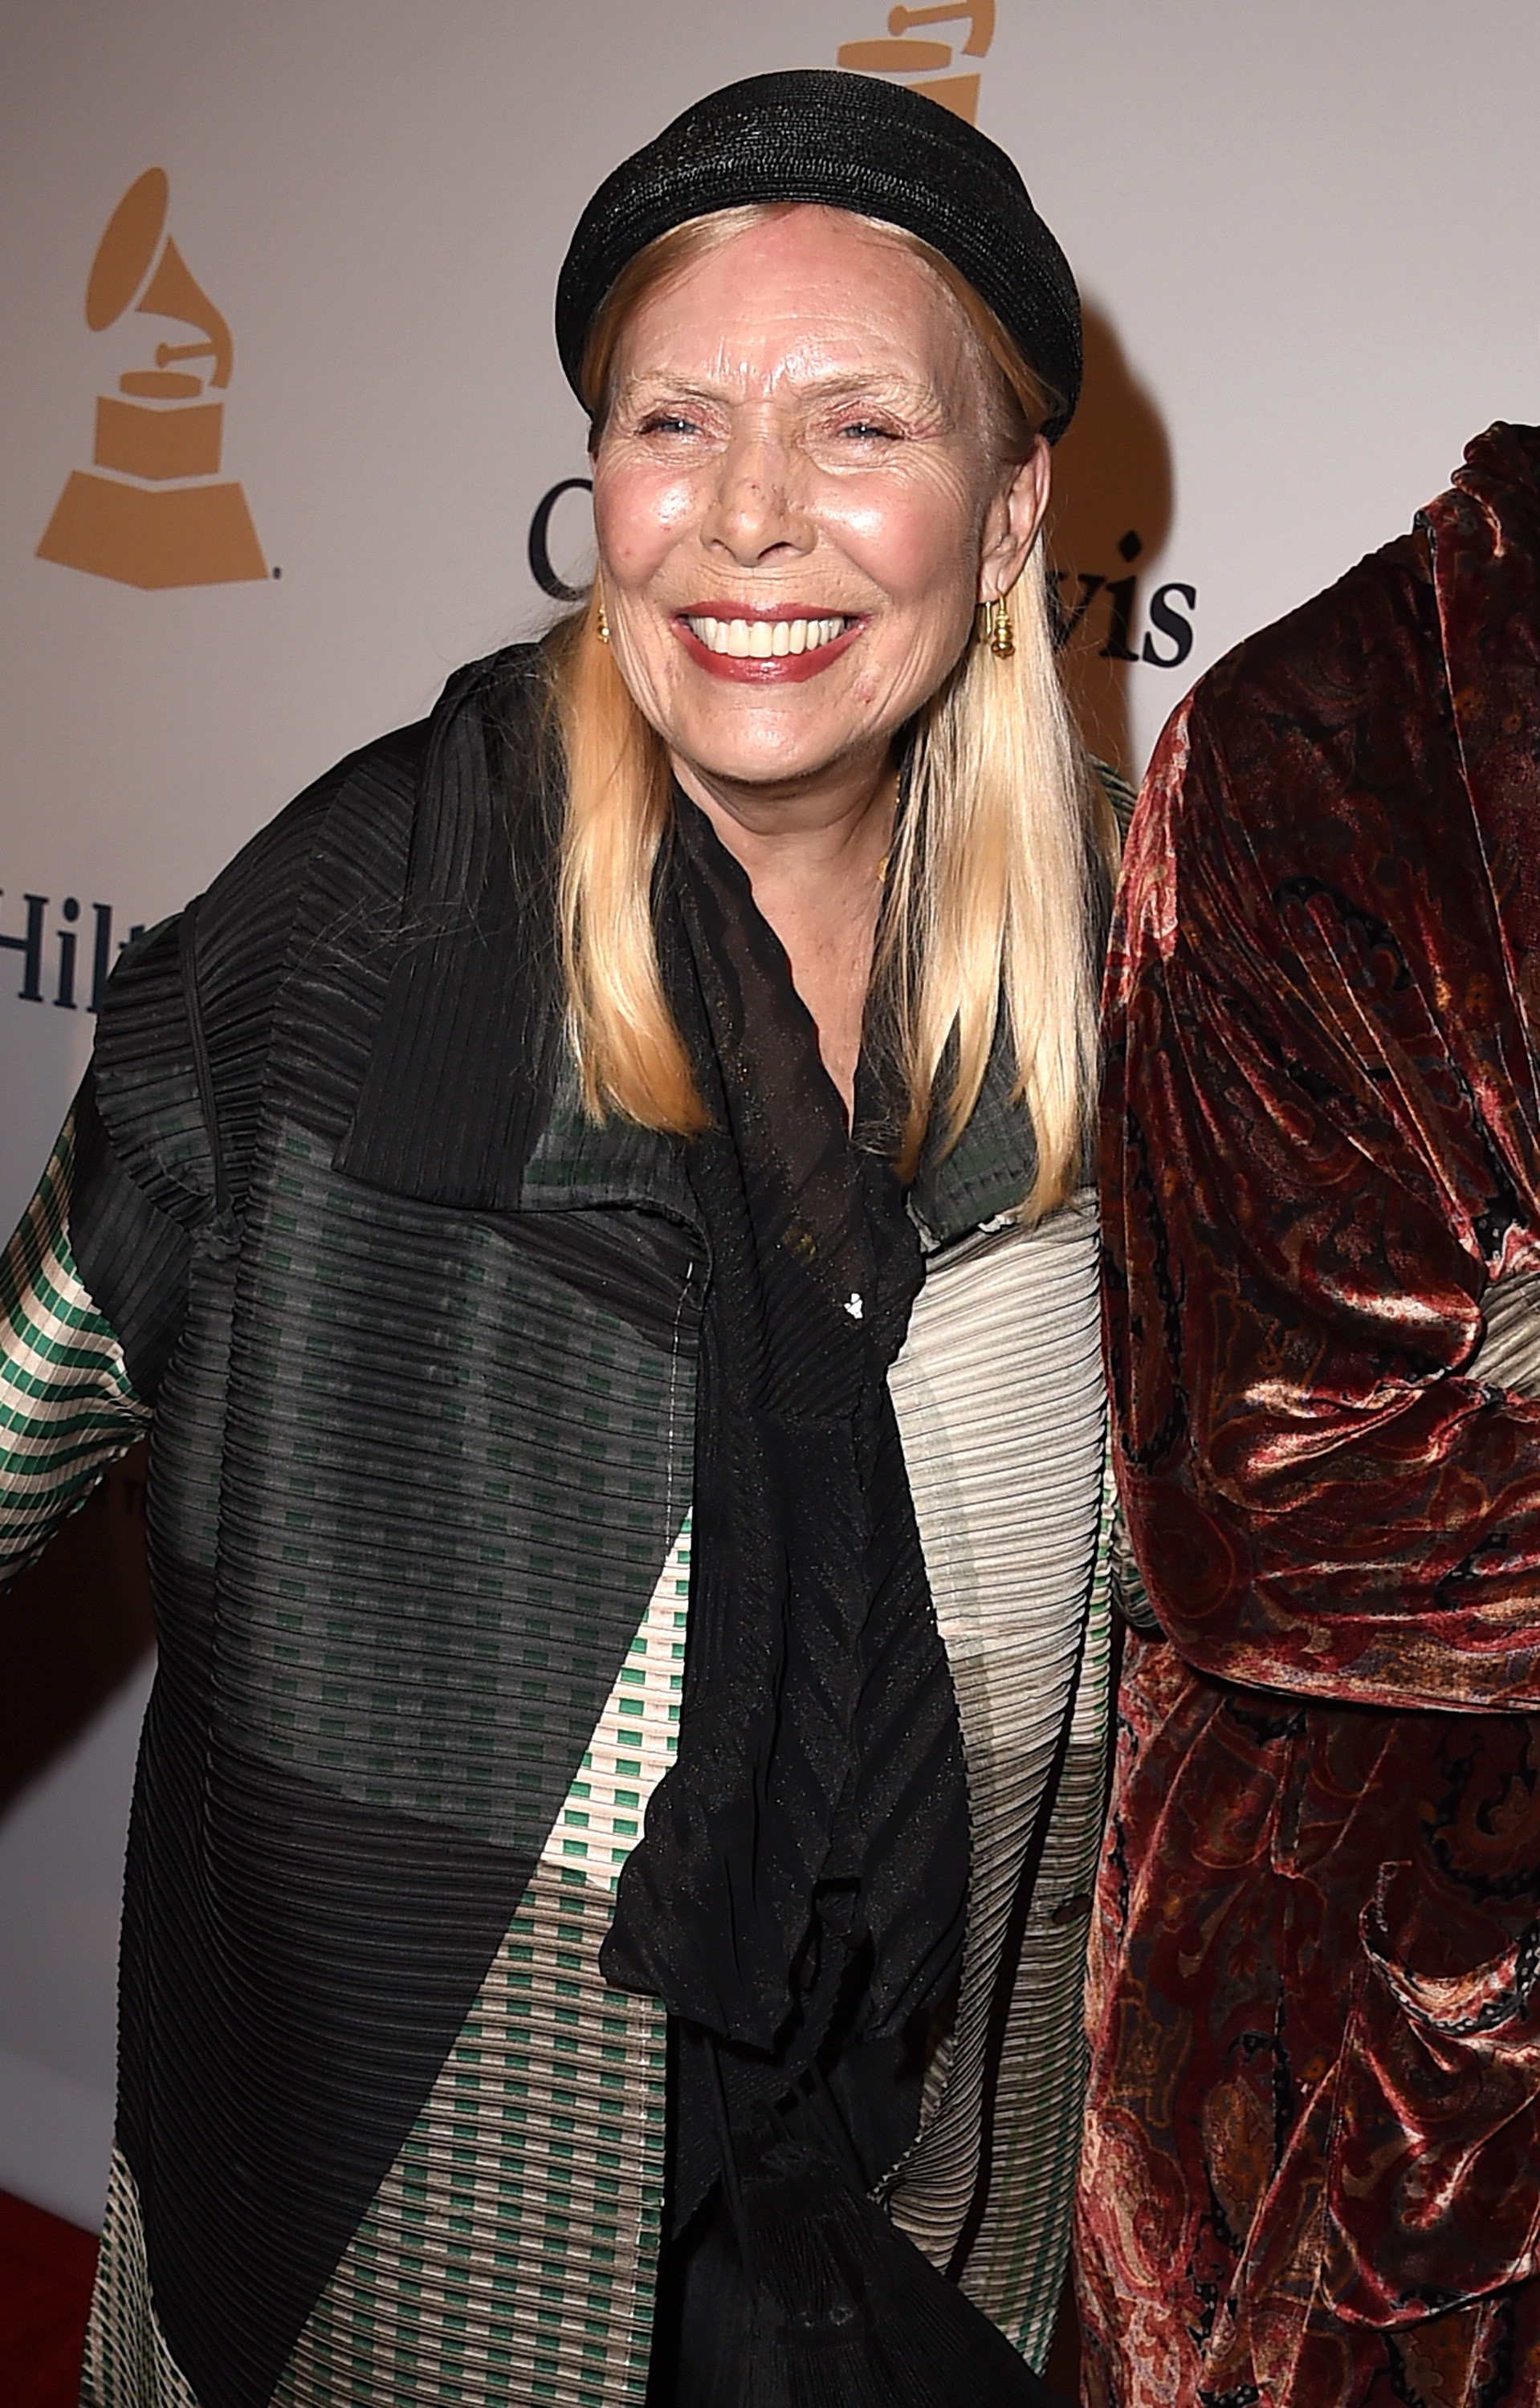 Singer-songwriter Joni Mitchell attends the Pre-GRAMMY Gala and Salute To Industry Icons on Feb. 7, 2015 in Los Angeles, California.